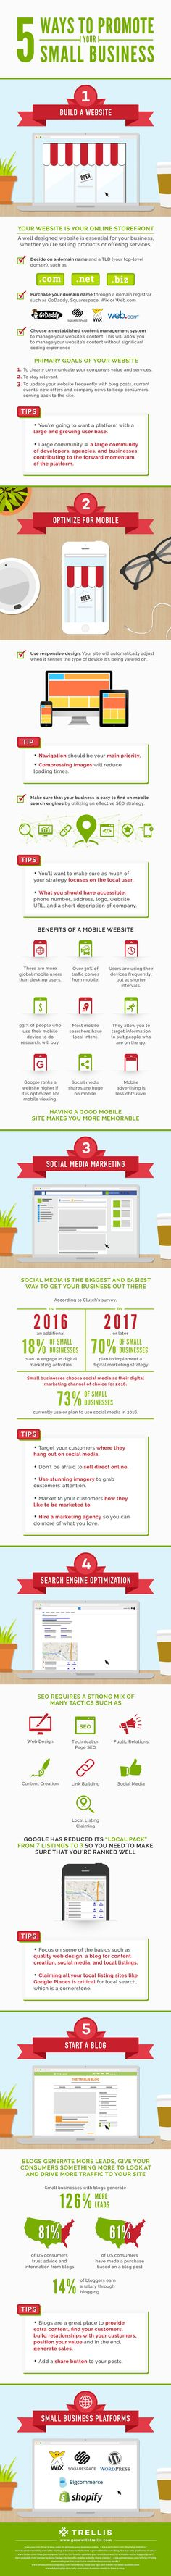 5 Ways to Promote Your Small Business #infographic #Business #SmallBusiness